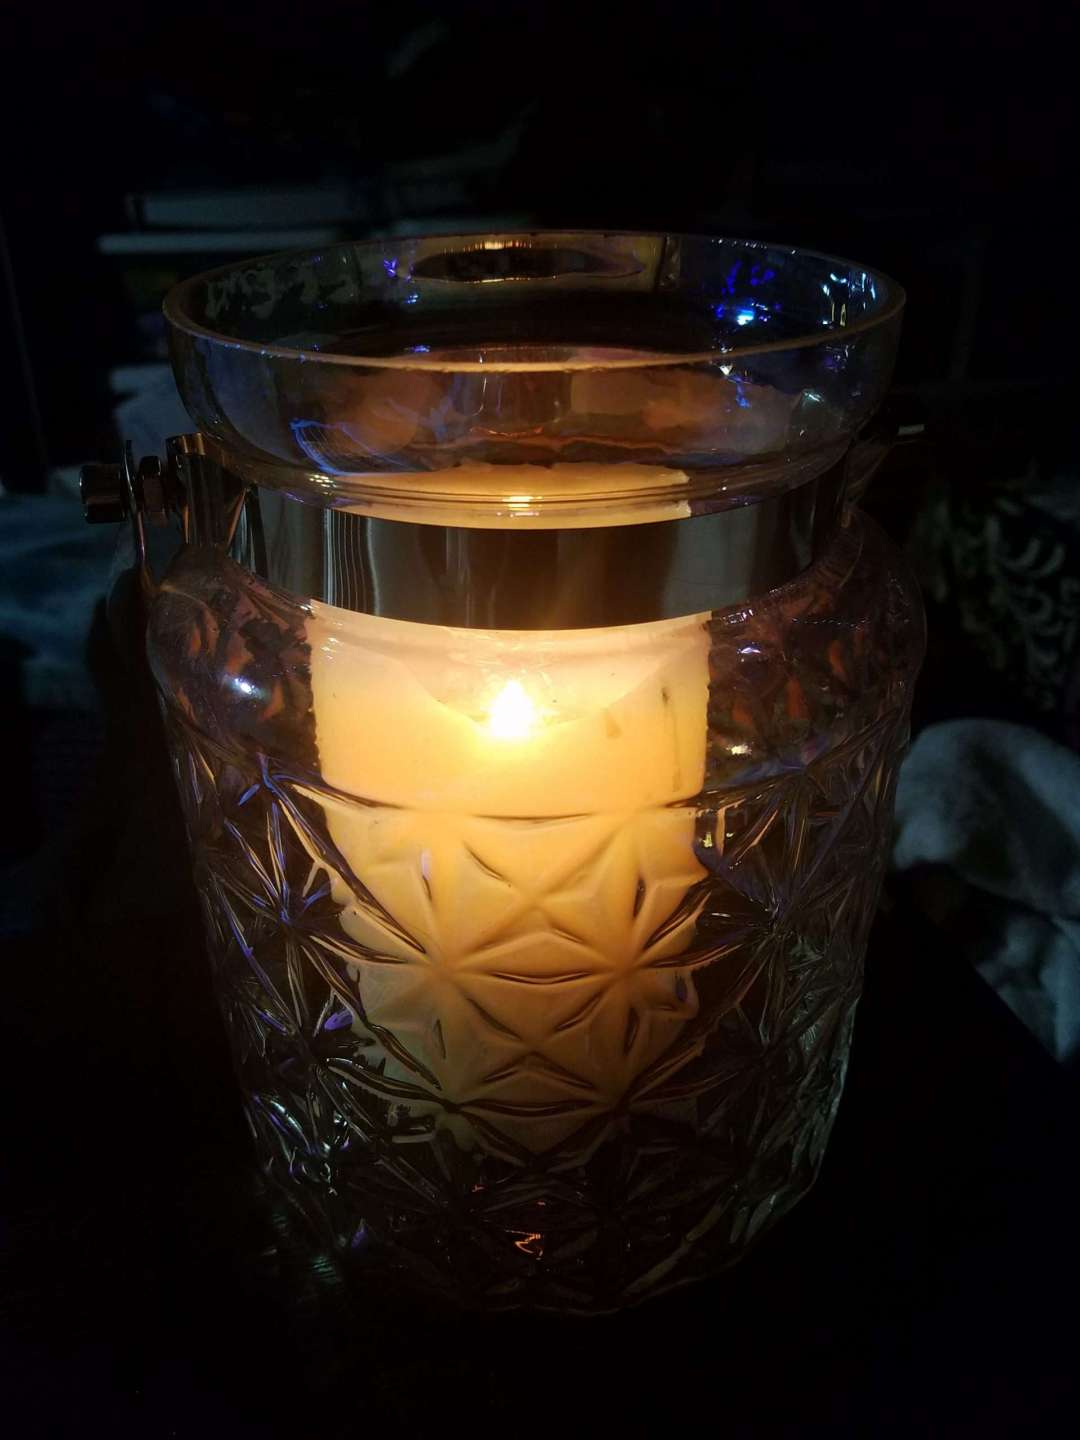 Solstice Night, Tea, and Light - Photo of a lit candle in a glass jar illuminating the darkness